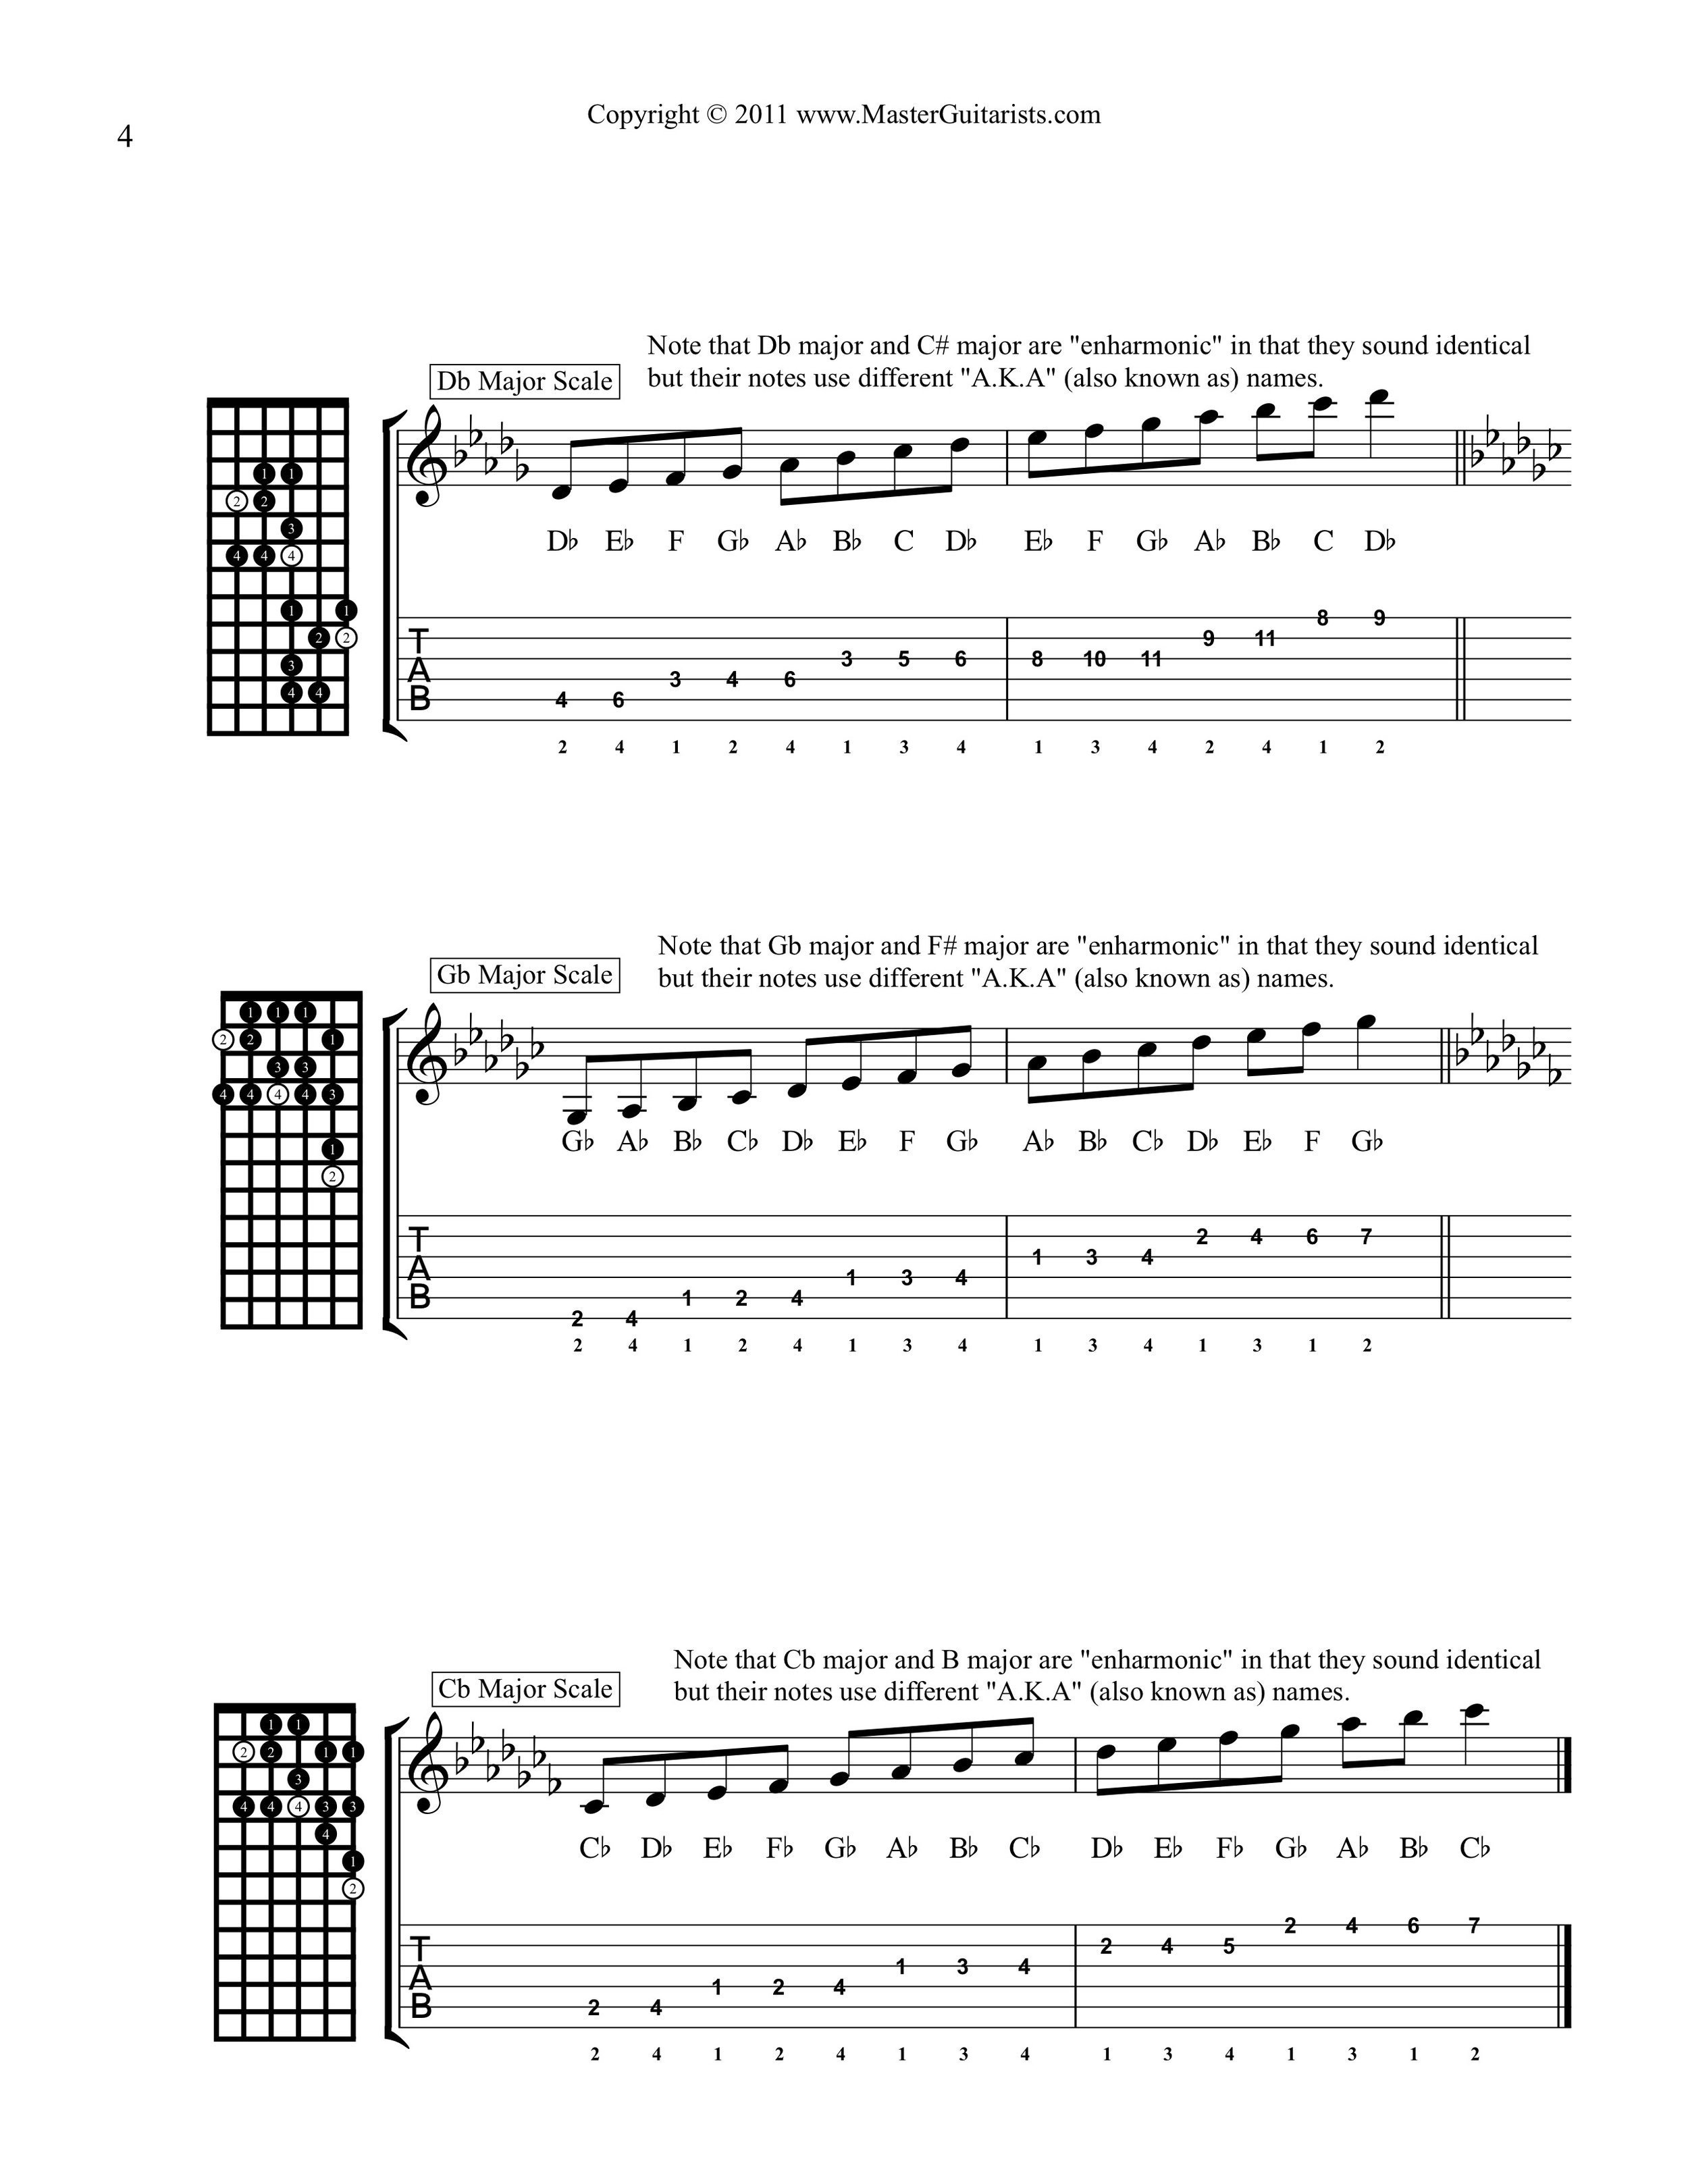 15 Two Octave Fingerings For The Major Scale1318212833 4-4.jpeg